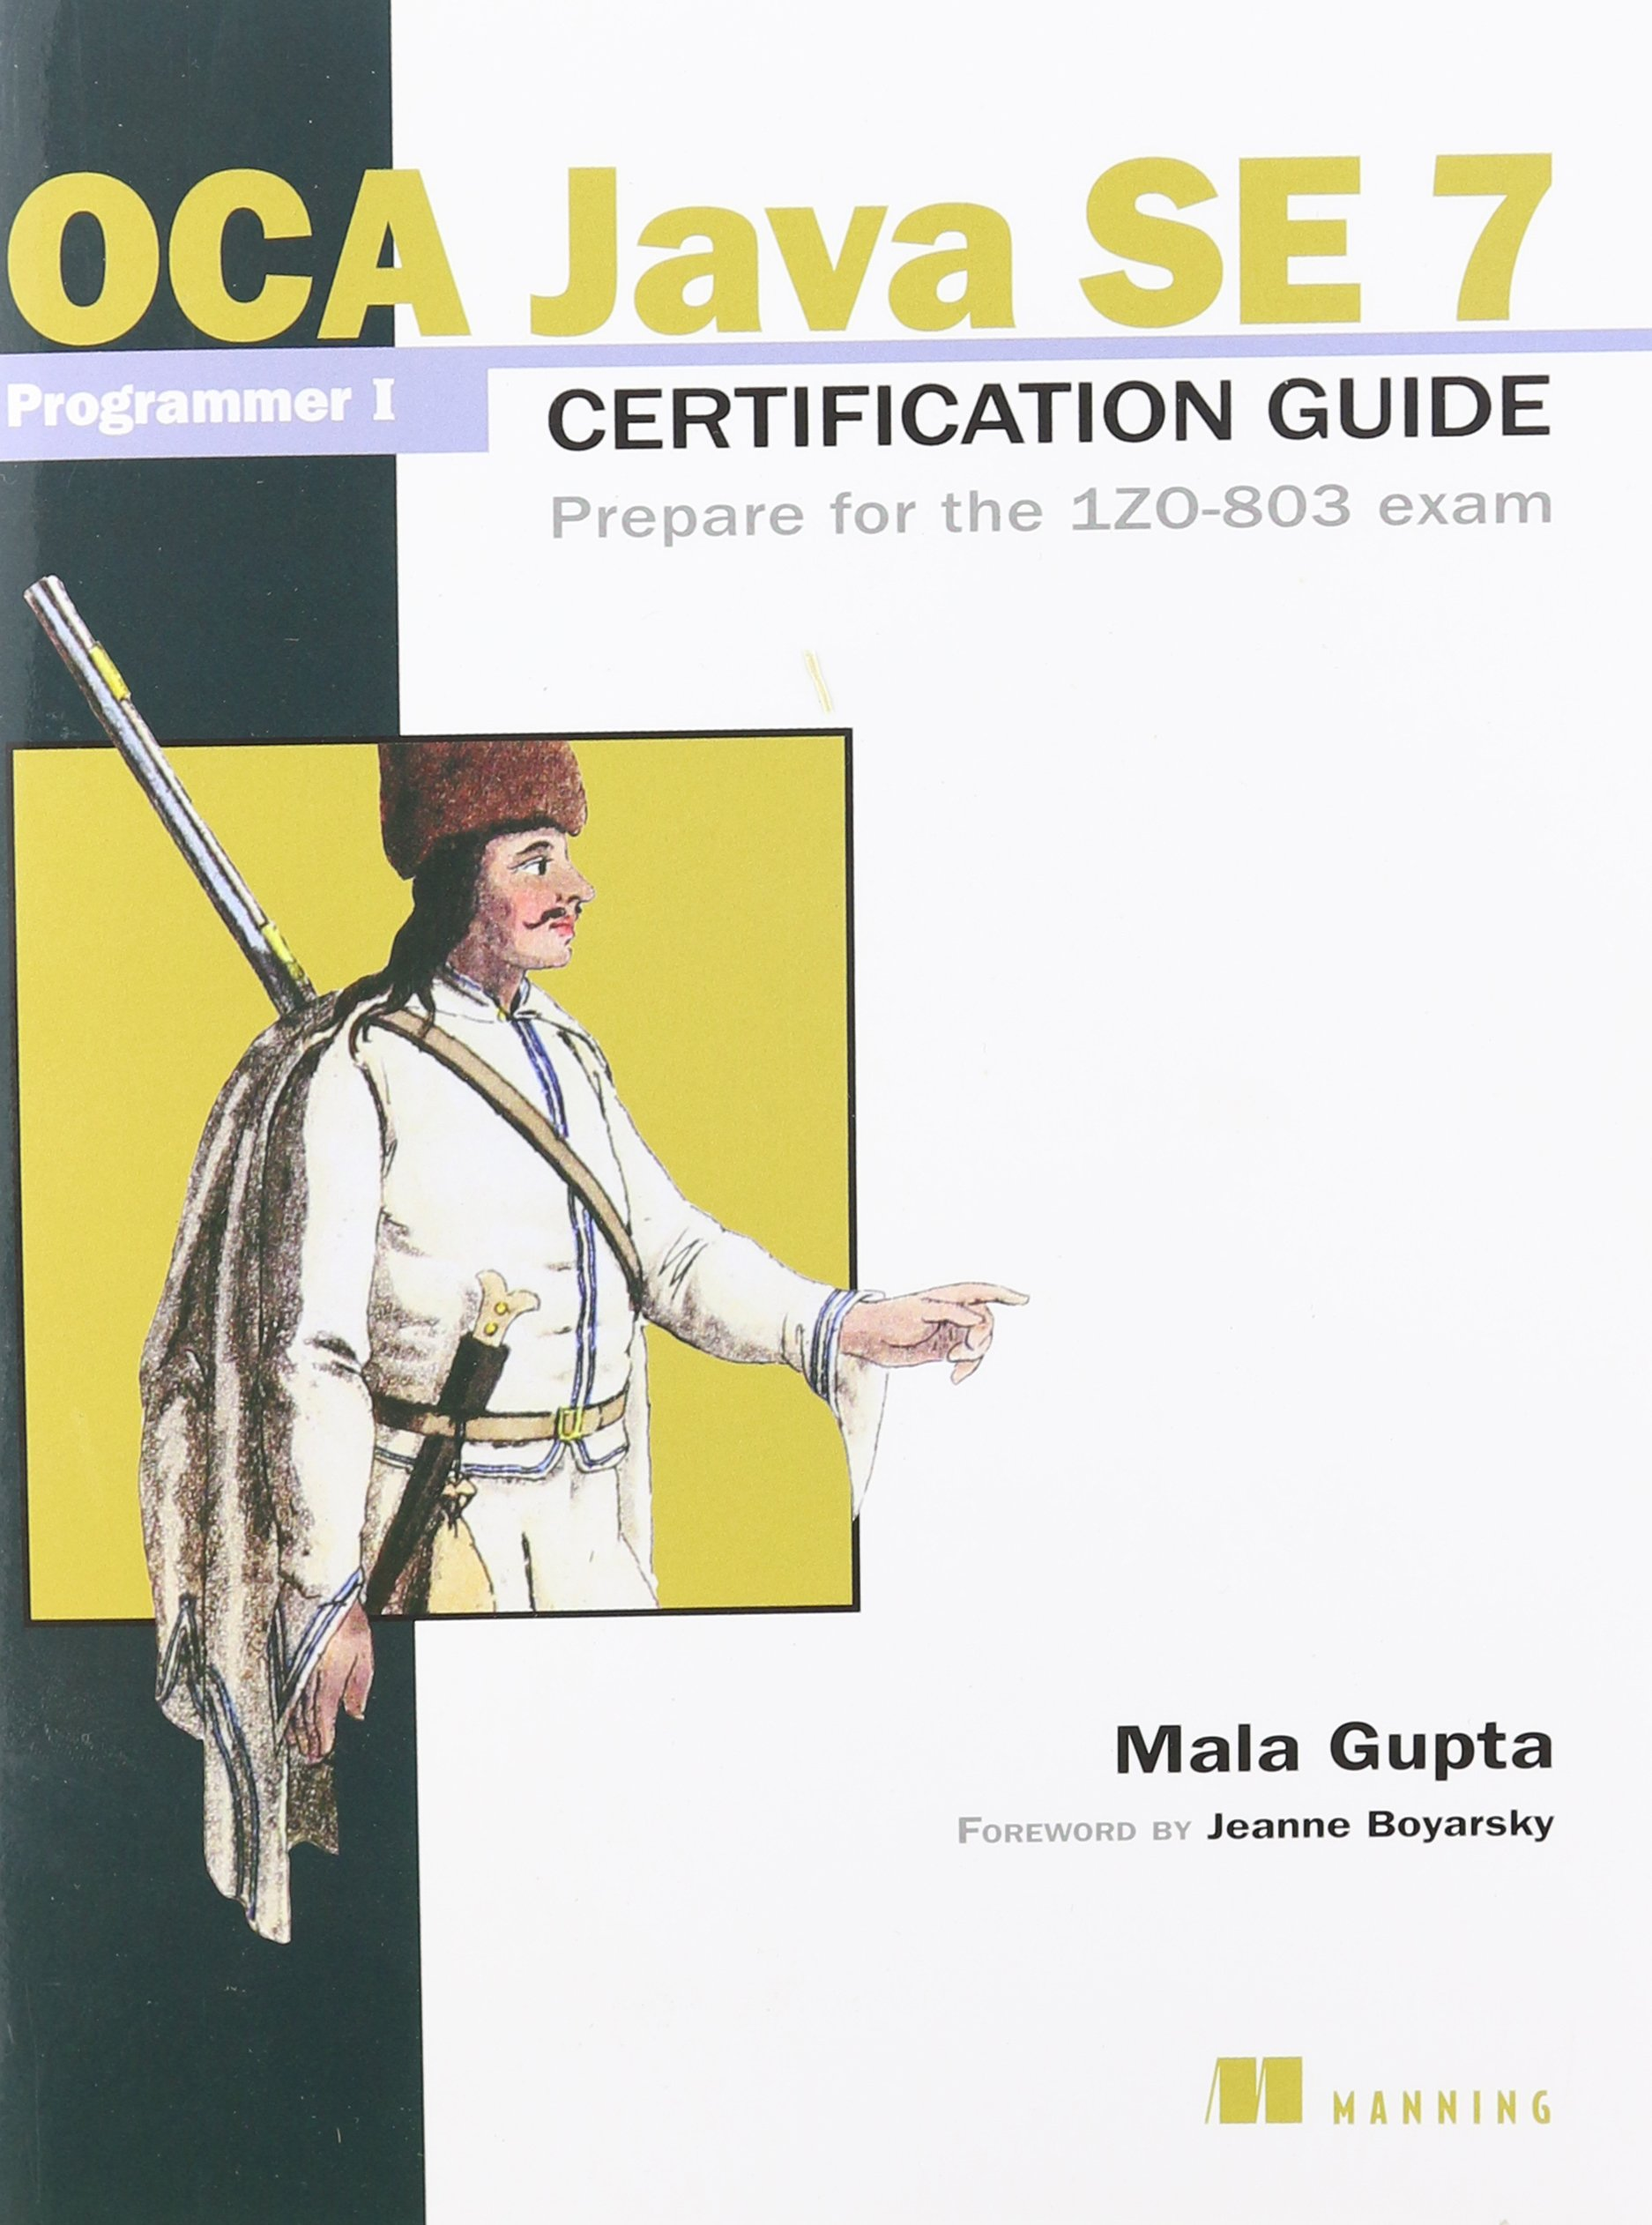 OCA Java SE 7 Programmer I Certification Guide: Prepare for the 1ZO-803 exam by Brand: Manning Publications